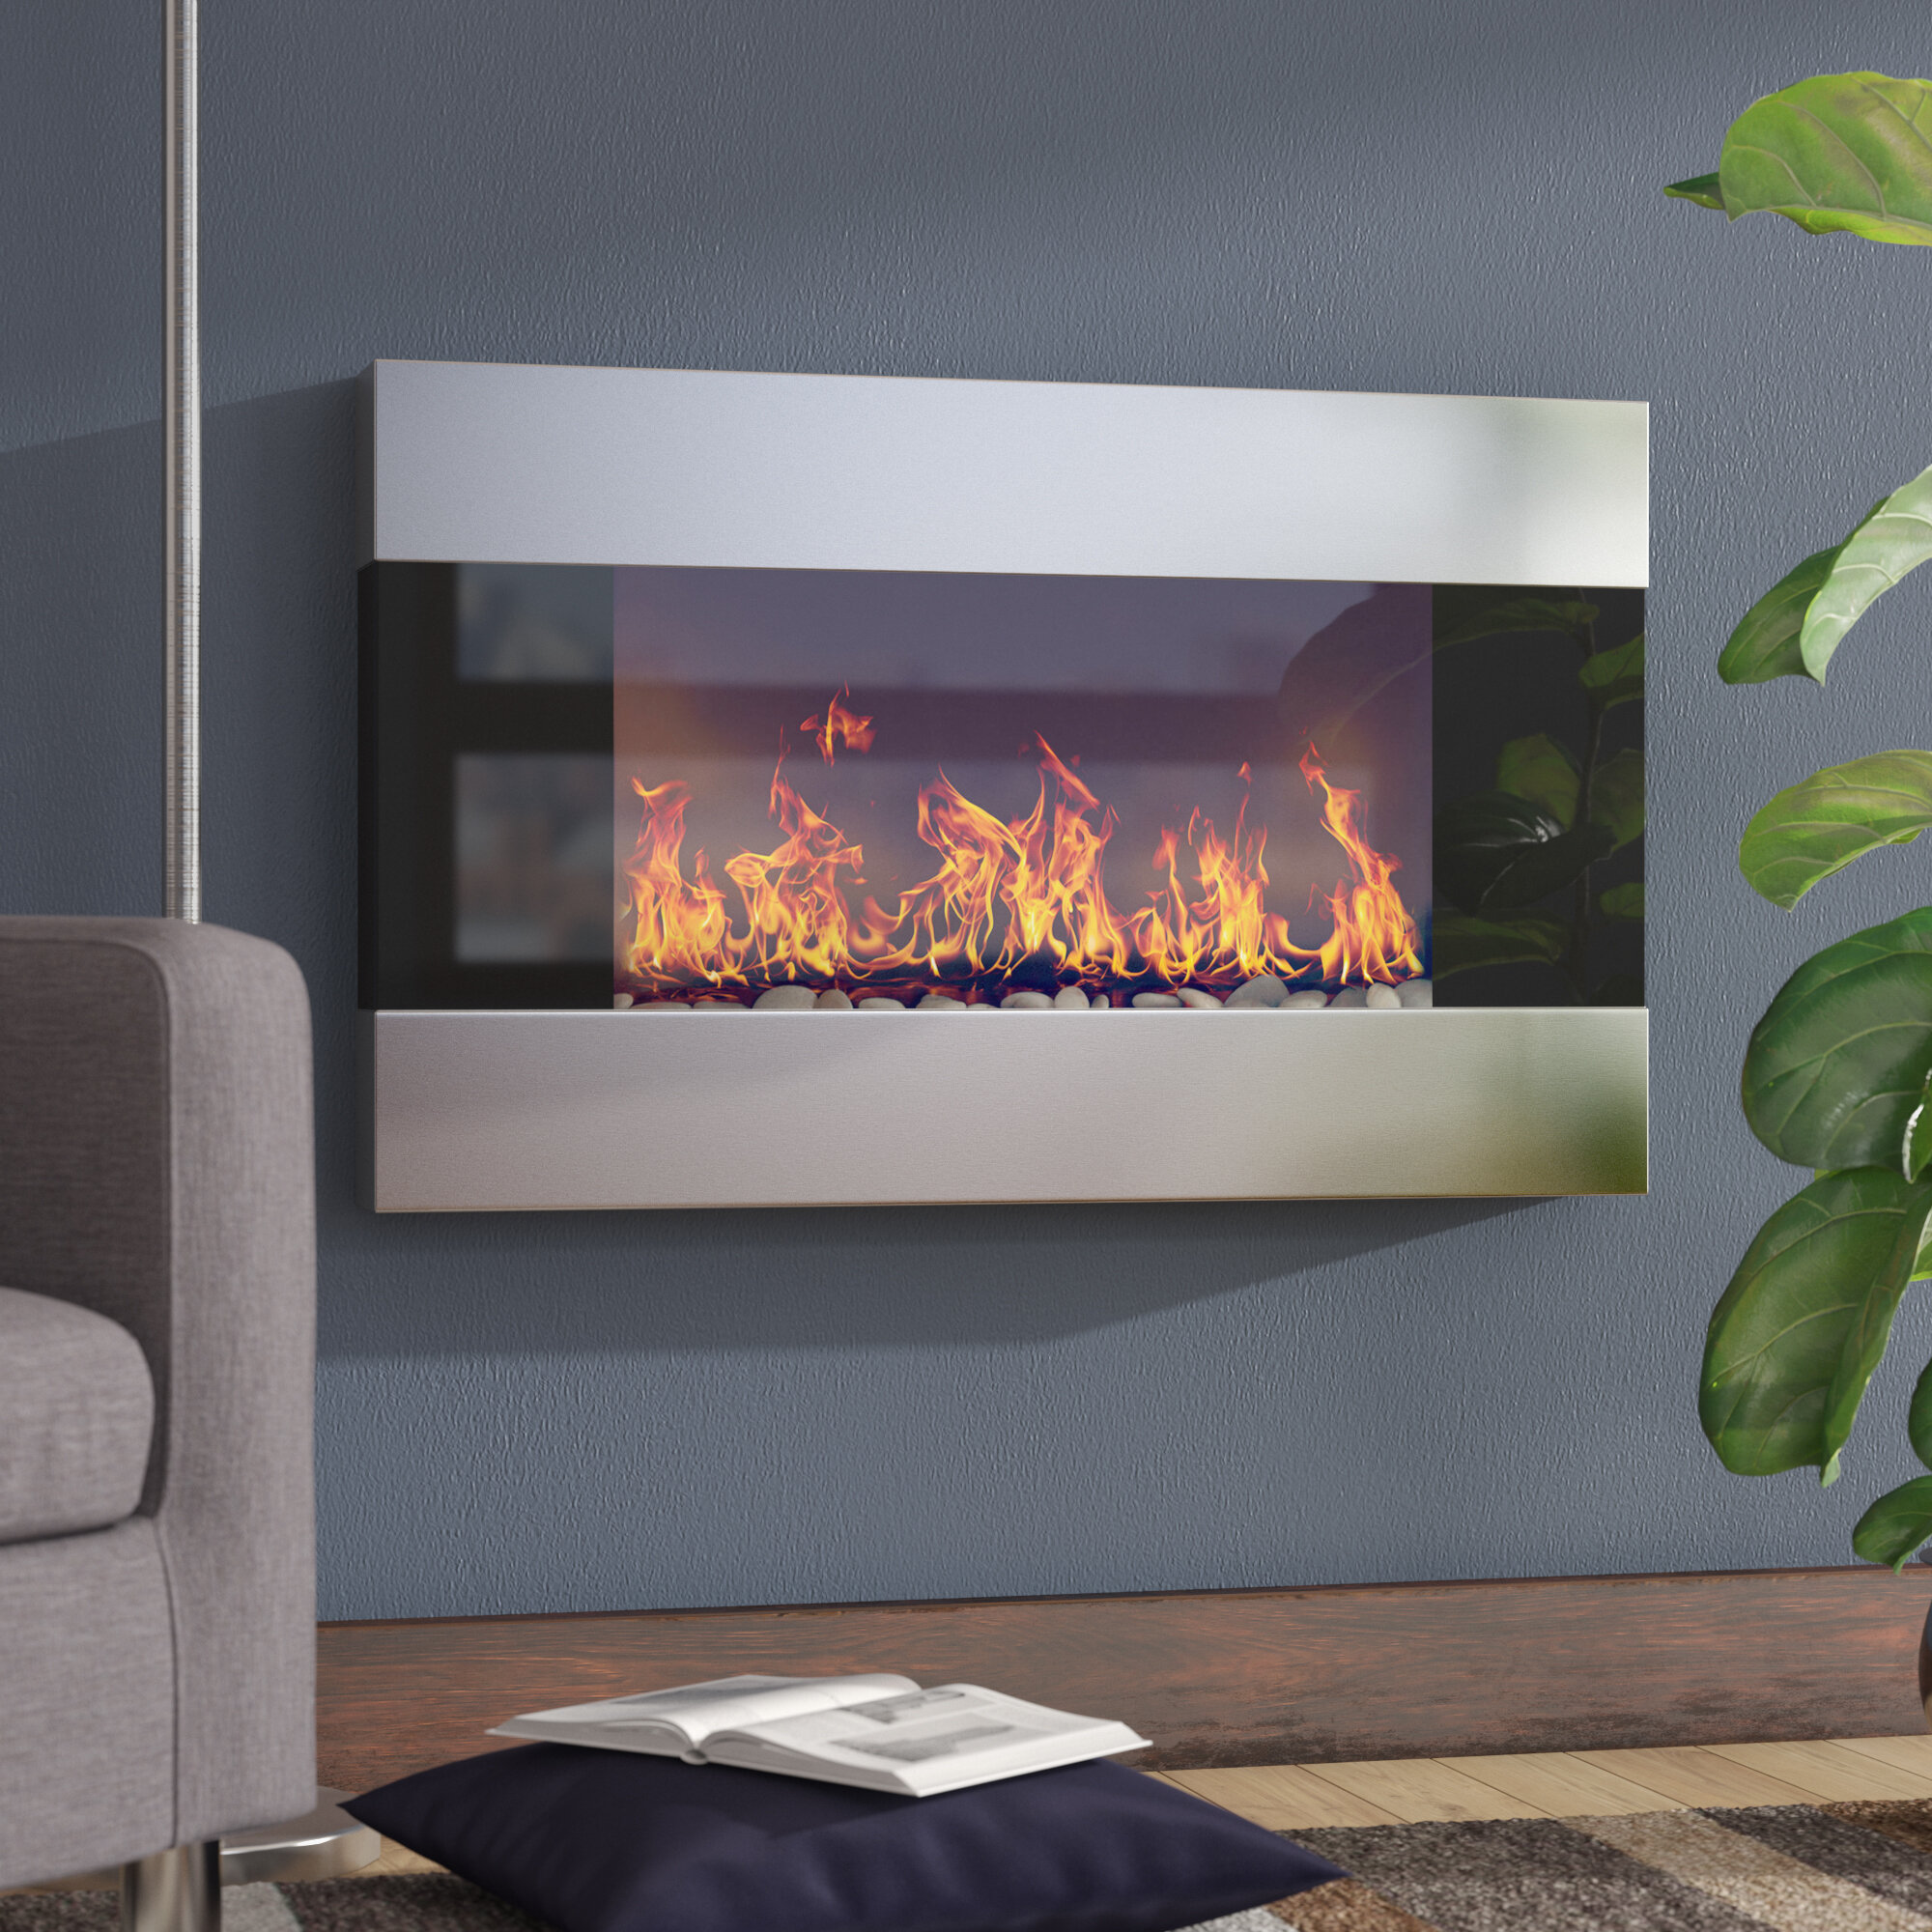 in with reviews fireplace decorating under mounted above tv popular ethanol fireplaces gas living mount electric styles two wall room thermostat the and ideas